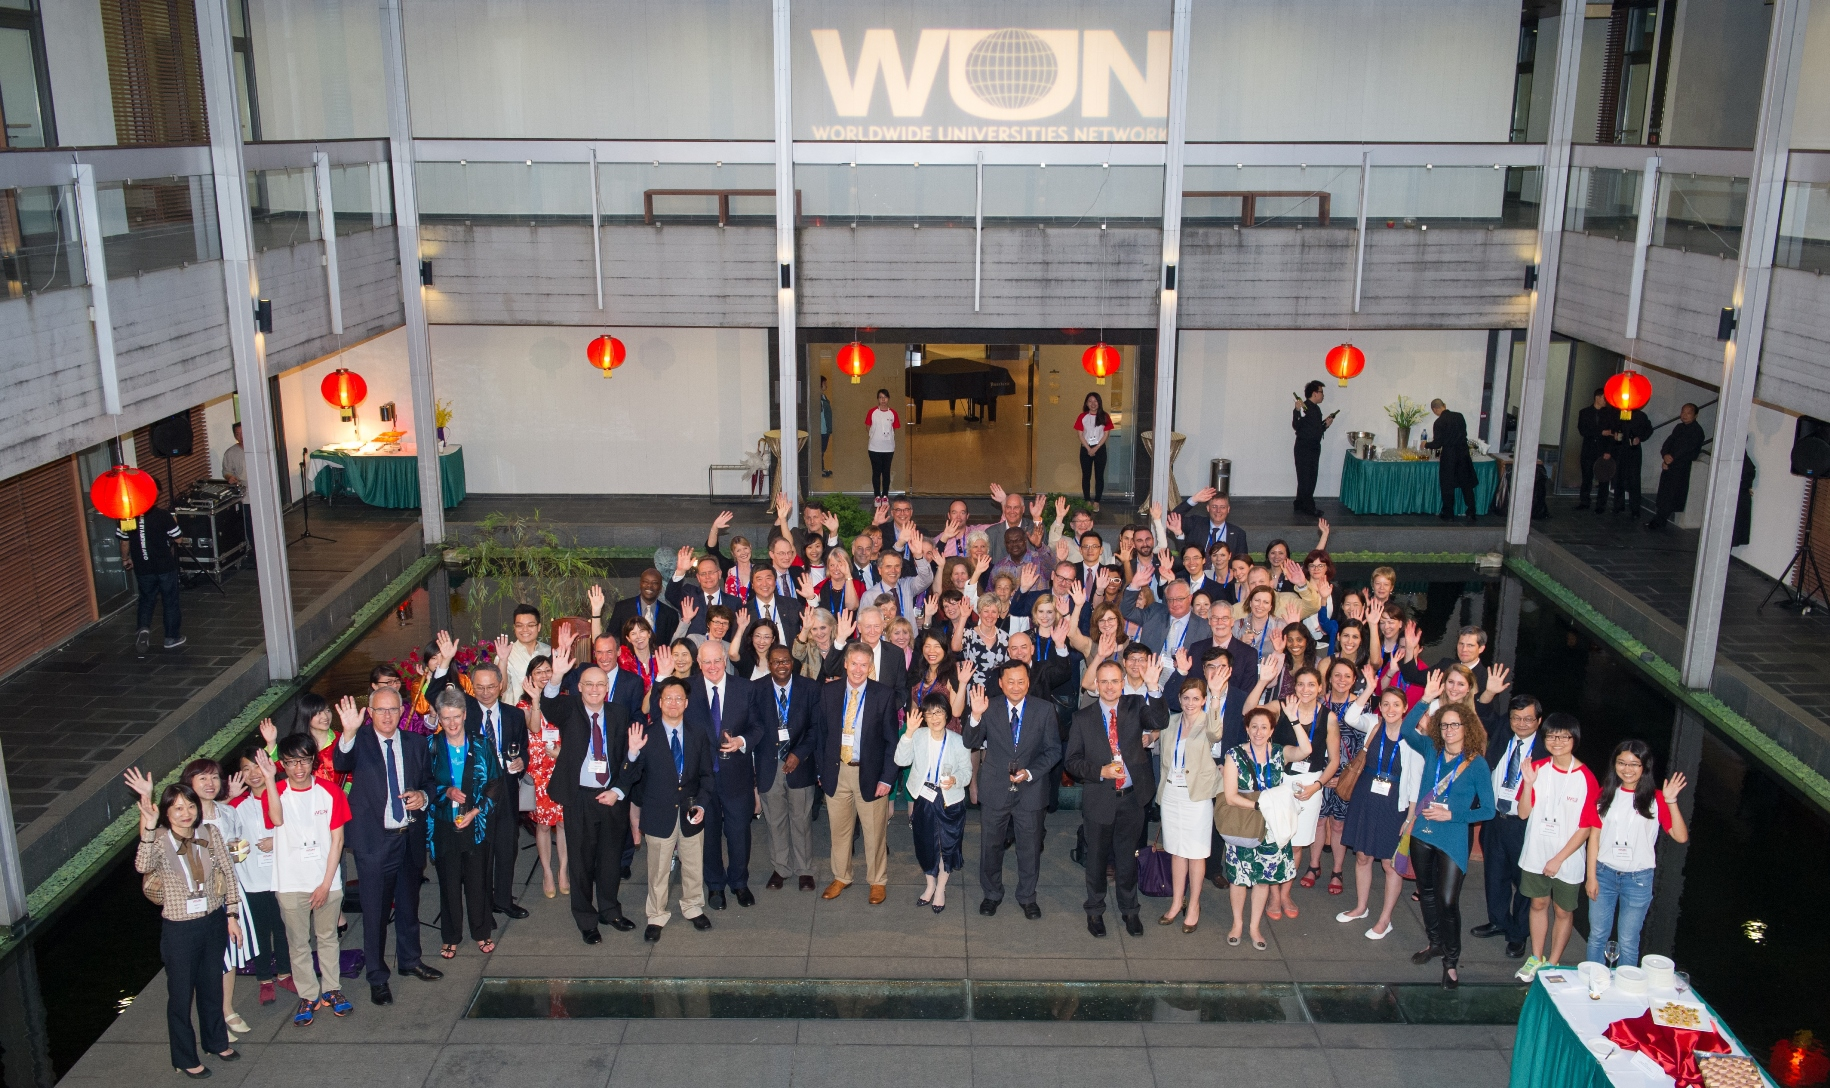 CUHK hosts the welcome reception for the WUN delegation at the Art Museum